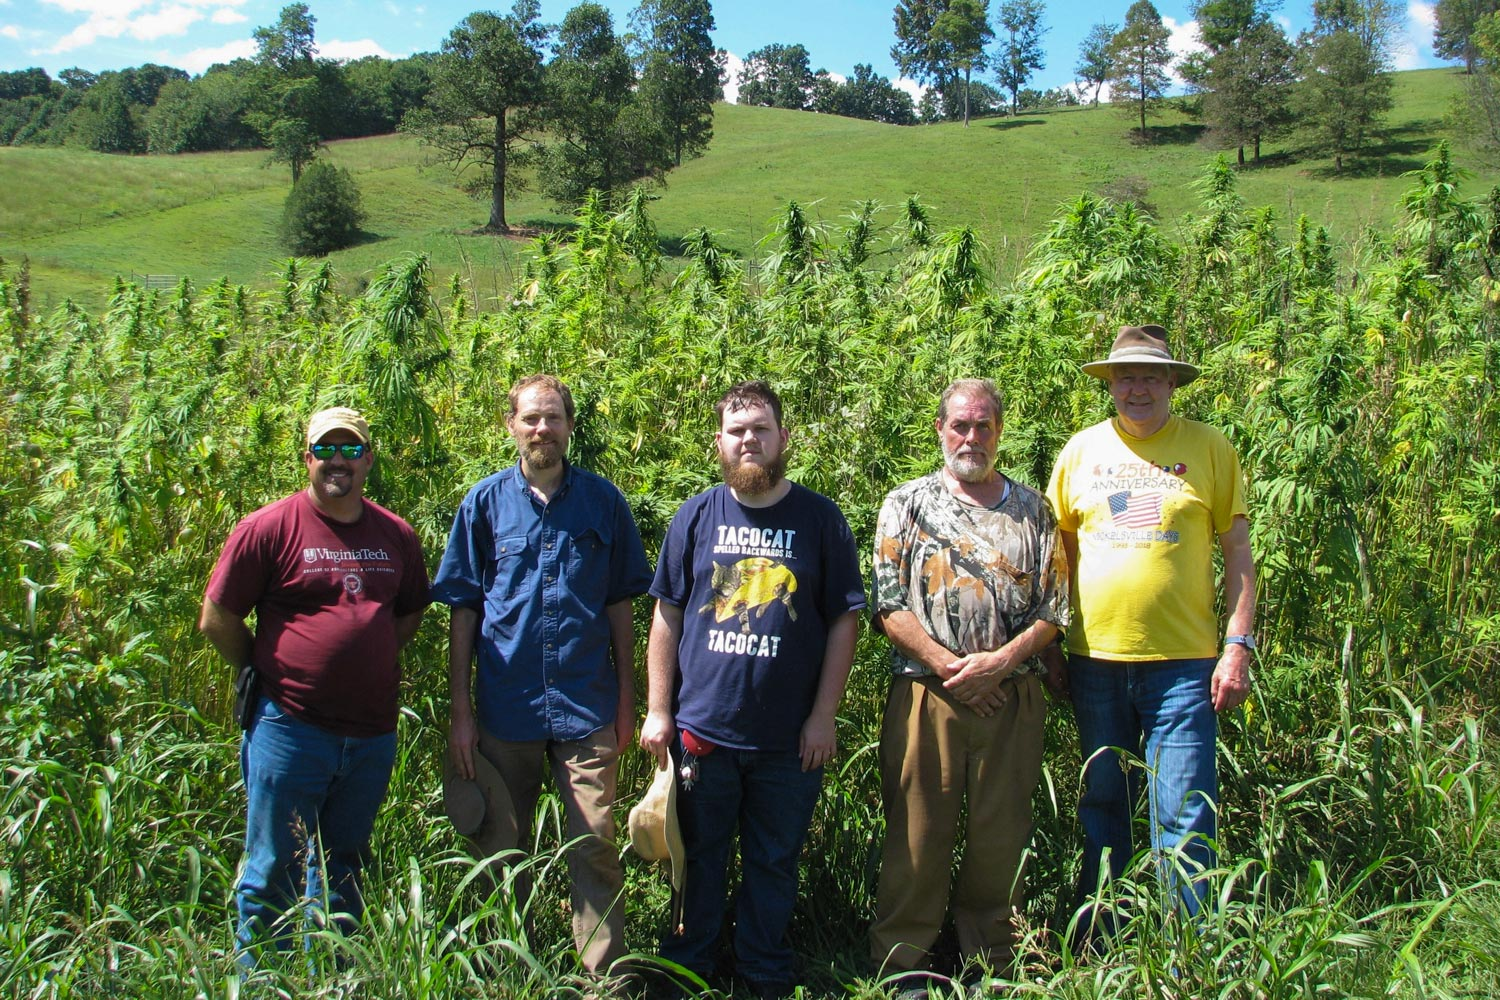 Huish, second from the left, poses with area farmers in front of a stand of hemp.